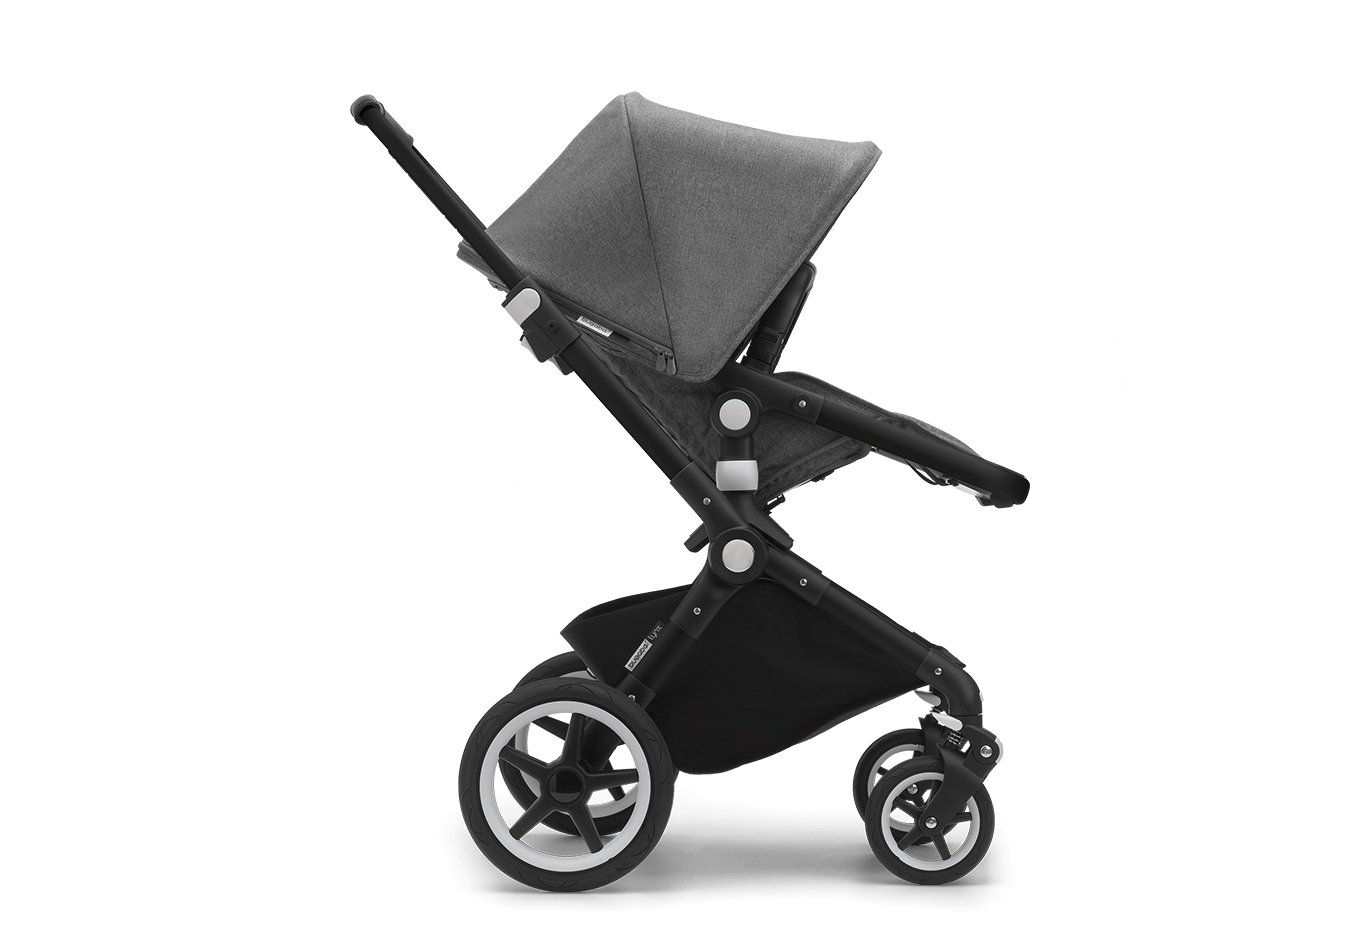 Egg Pram Replacement Wheels Bugaboo Prams Accessories And More Bugaboo Au